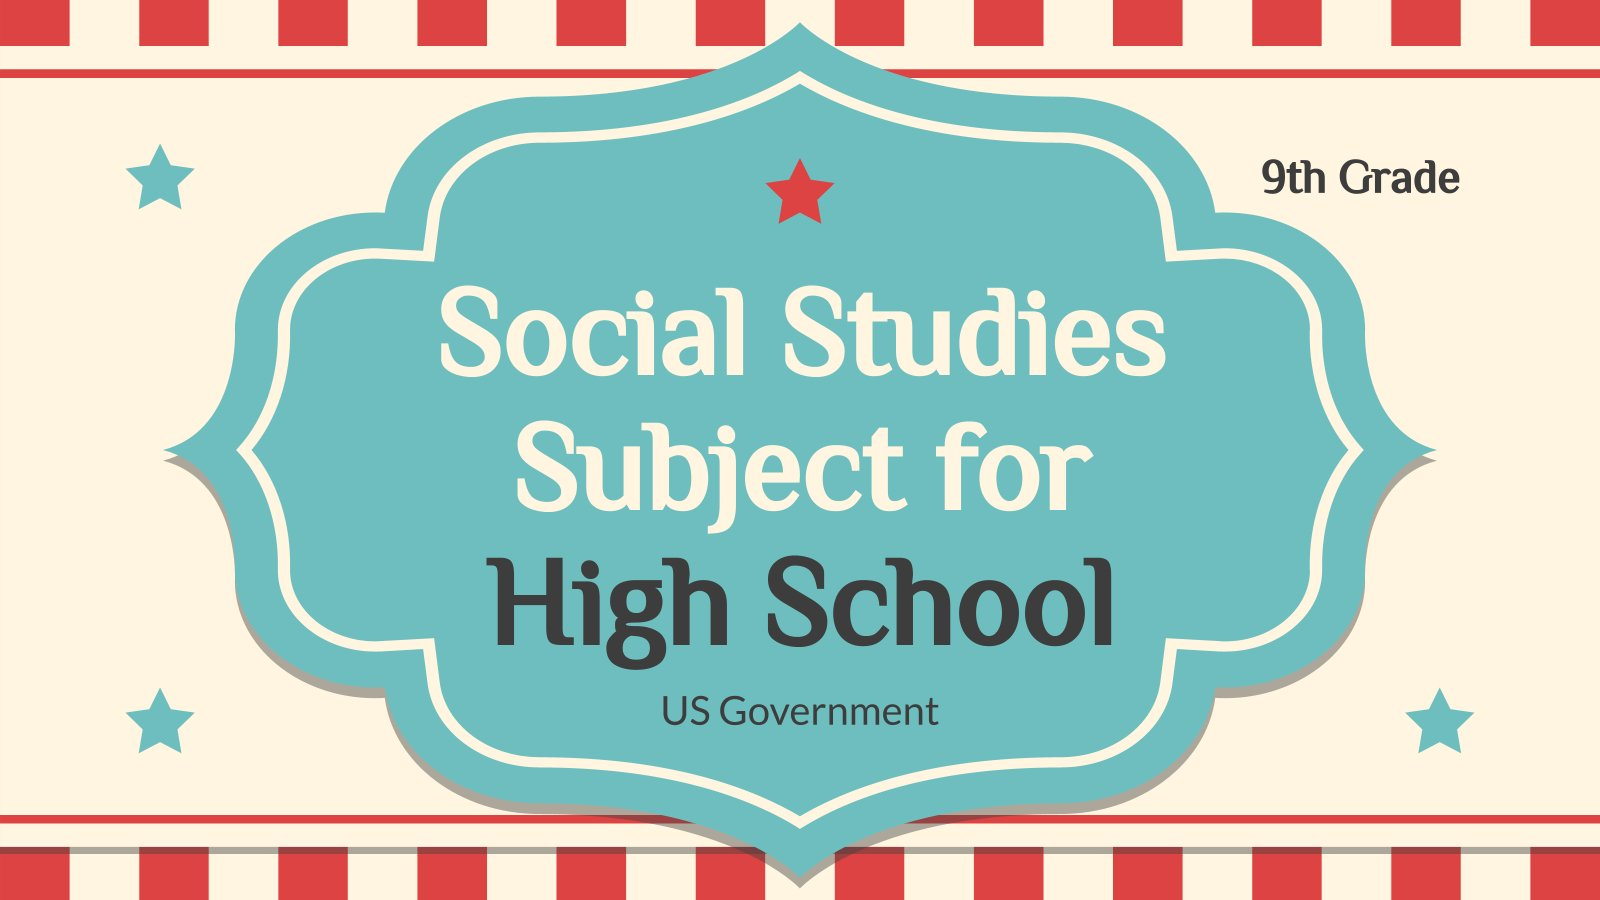 Social Studies Subject for High school - 9th Grade: US Government presentation template